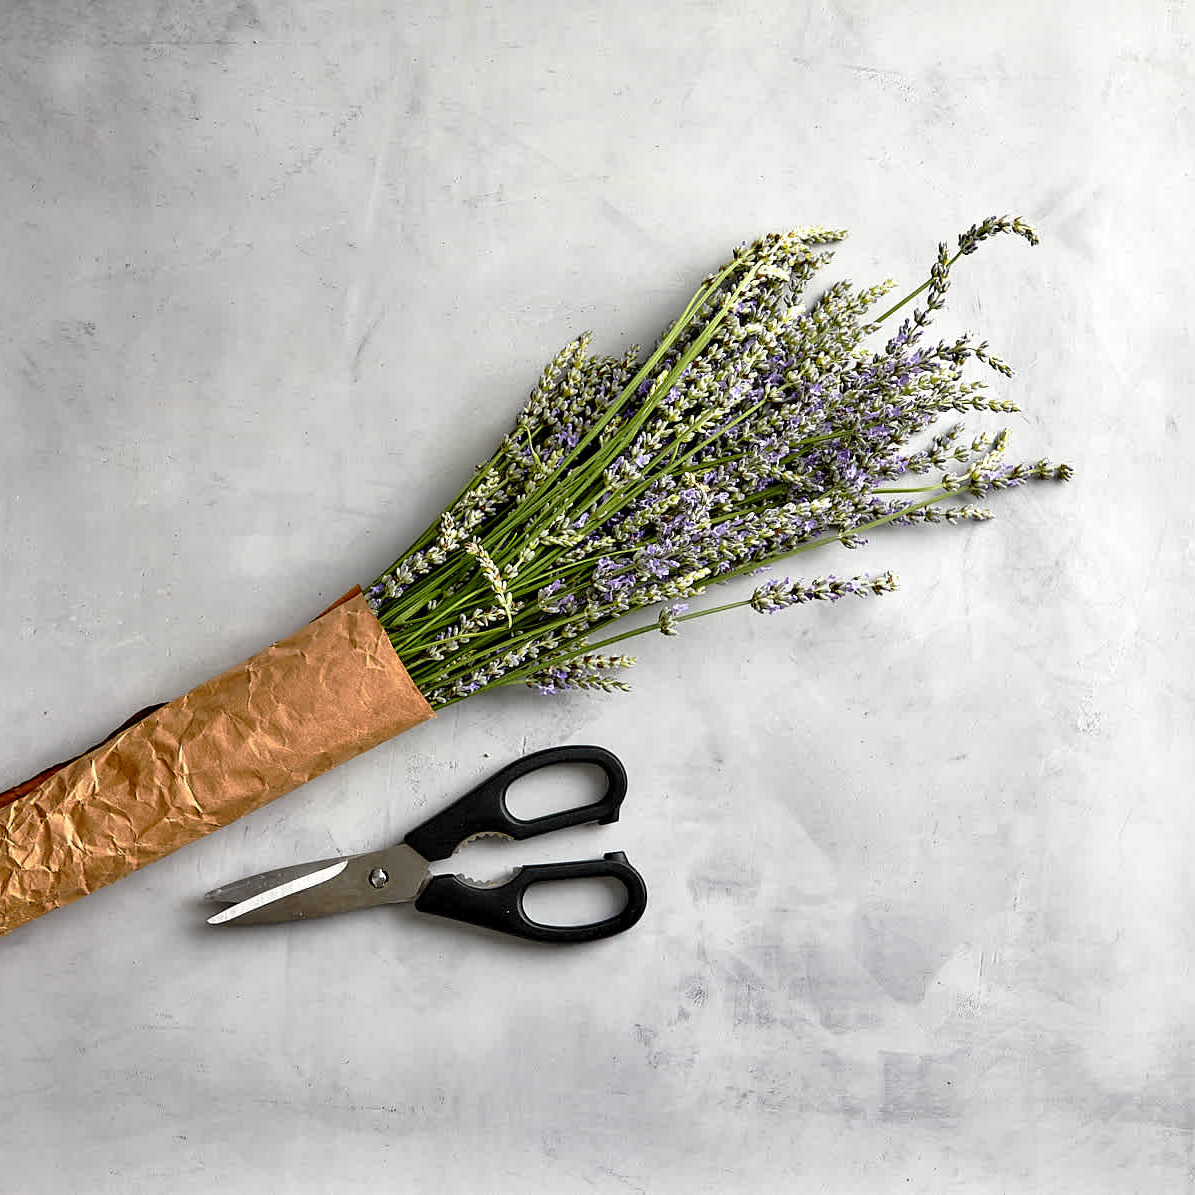 Leftover Lavender rescued at Imperfect for our line of Saved Stems